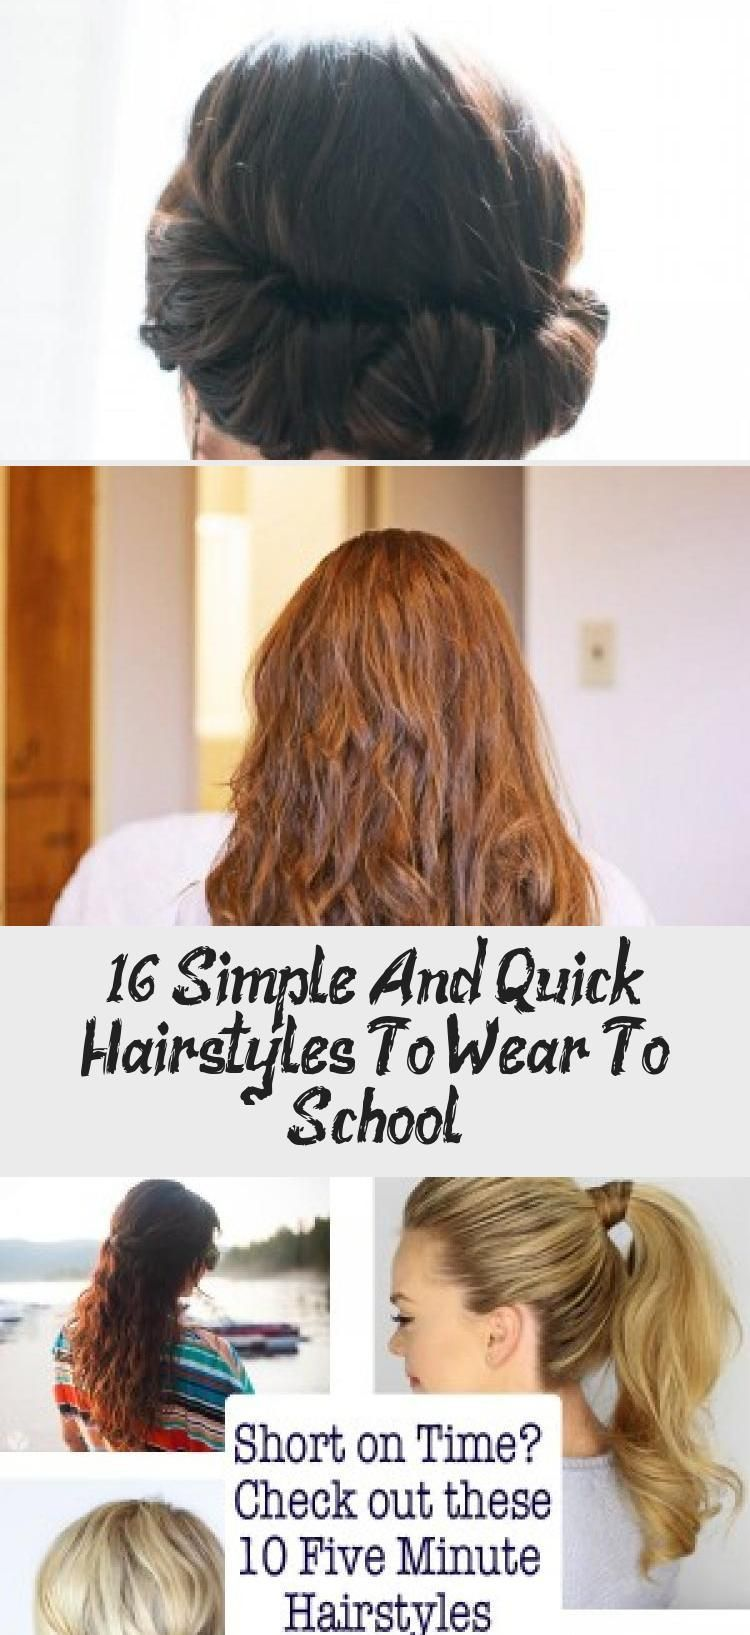 16 Simple And Quick Hairstyles To Wear To School - Hairstyle -  16 Simple and Quick Hairstyles to Wear to School #howdoesshe #hairstyles #beauty #quic...#beauty #hairstyle #hairstyles #howdoesshe #quic #quick #school #simple #wear